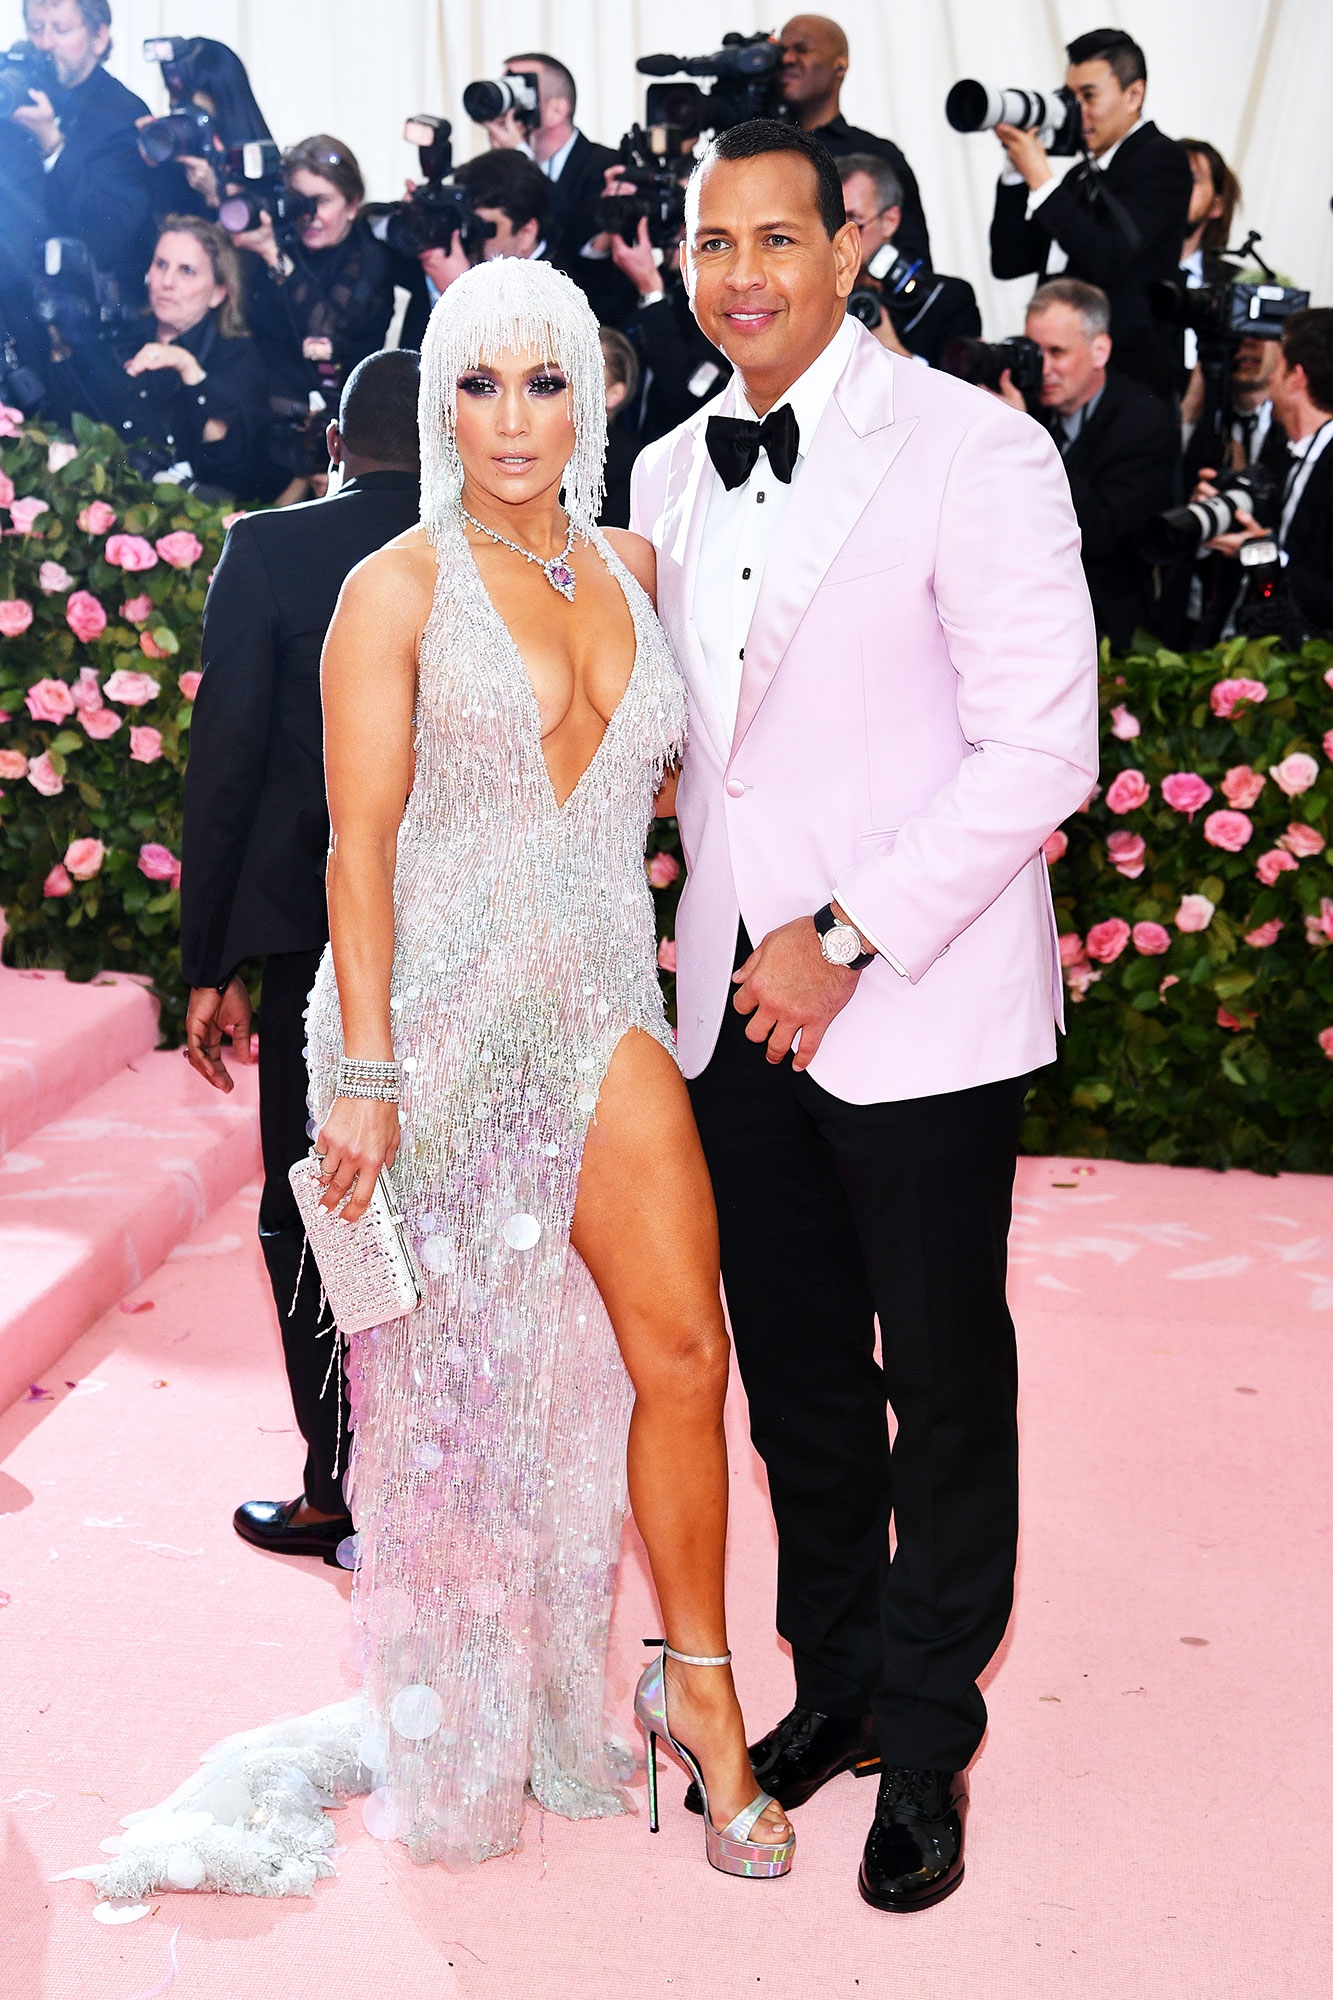 Jennifer Lopez and Alex Rodriguez met gala 2019 couples - JLo dazzled in a blingy Versace look, while her fiancé matched the carpet in pink.